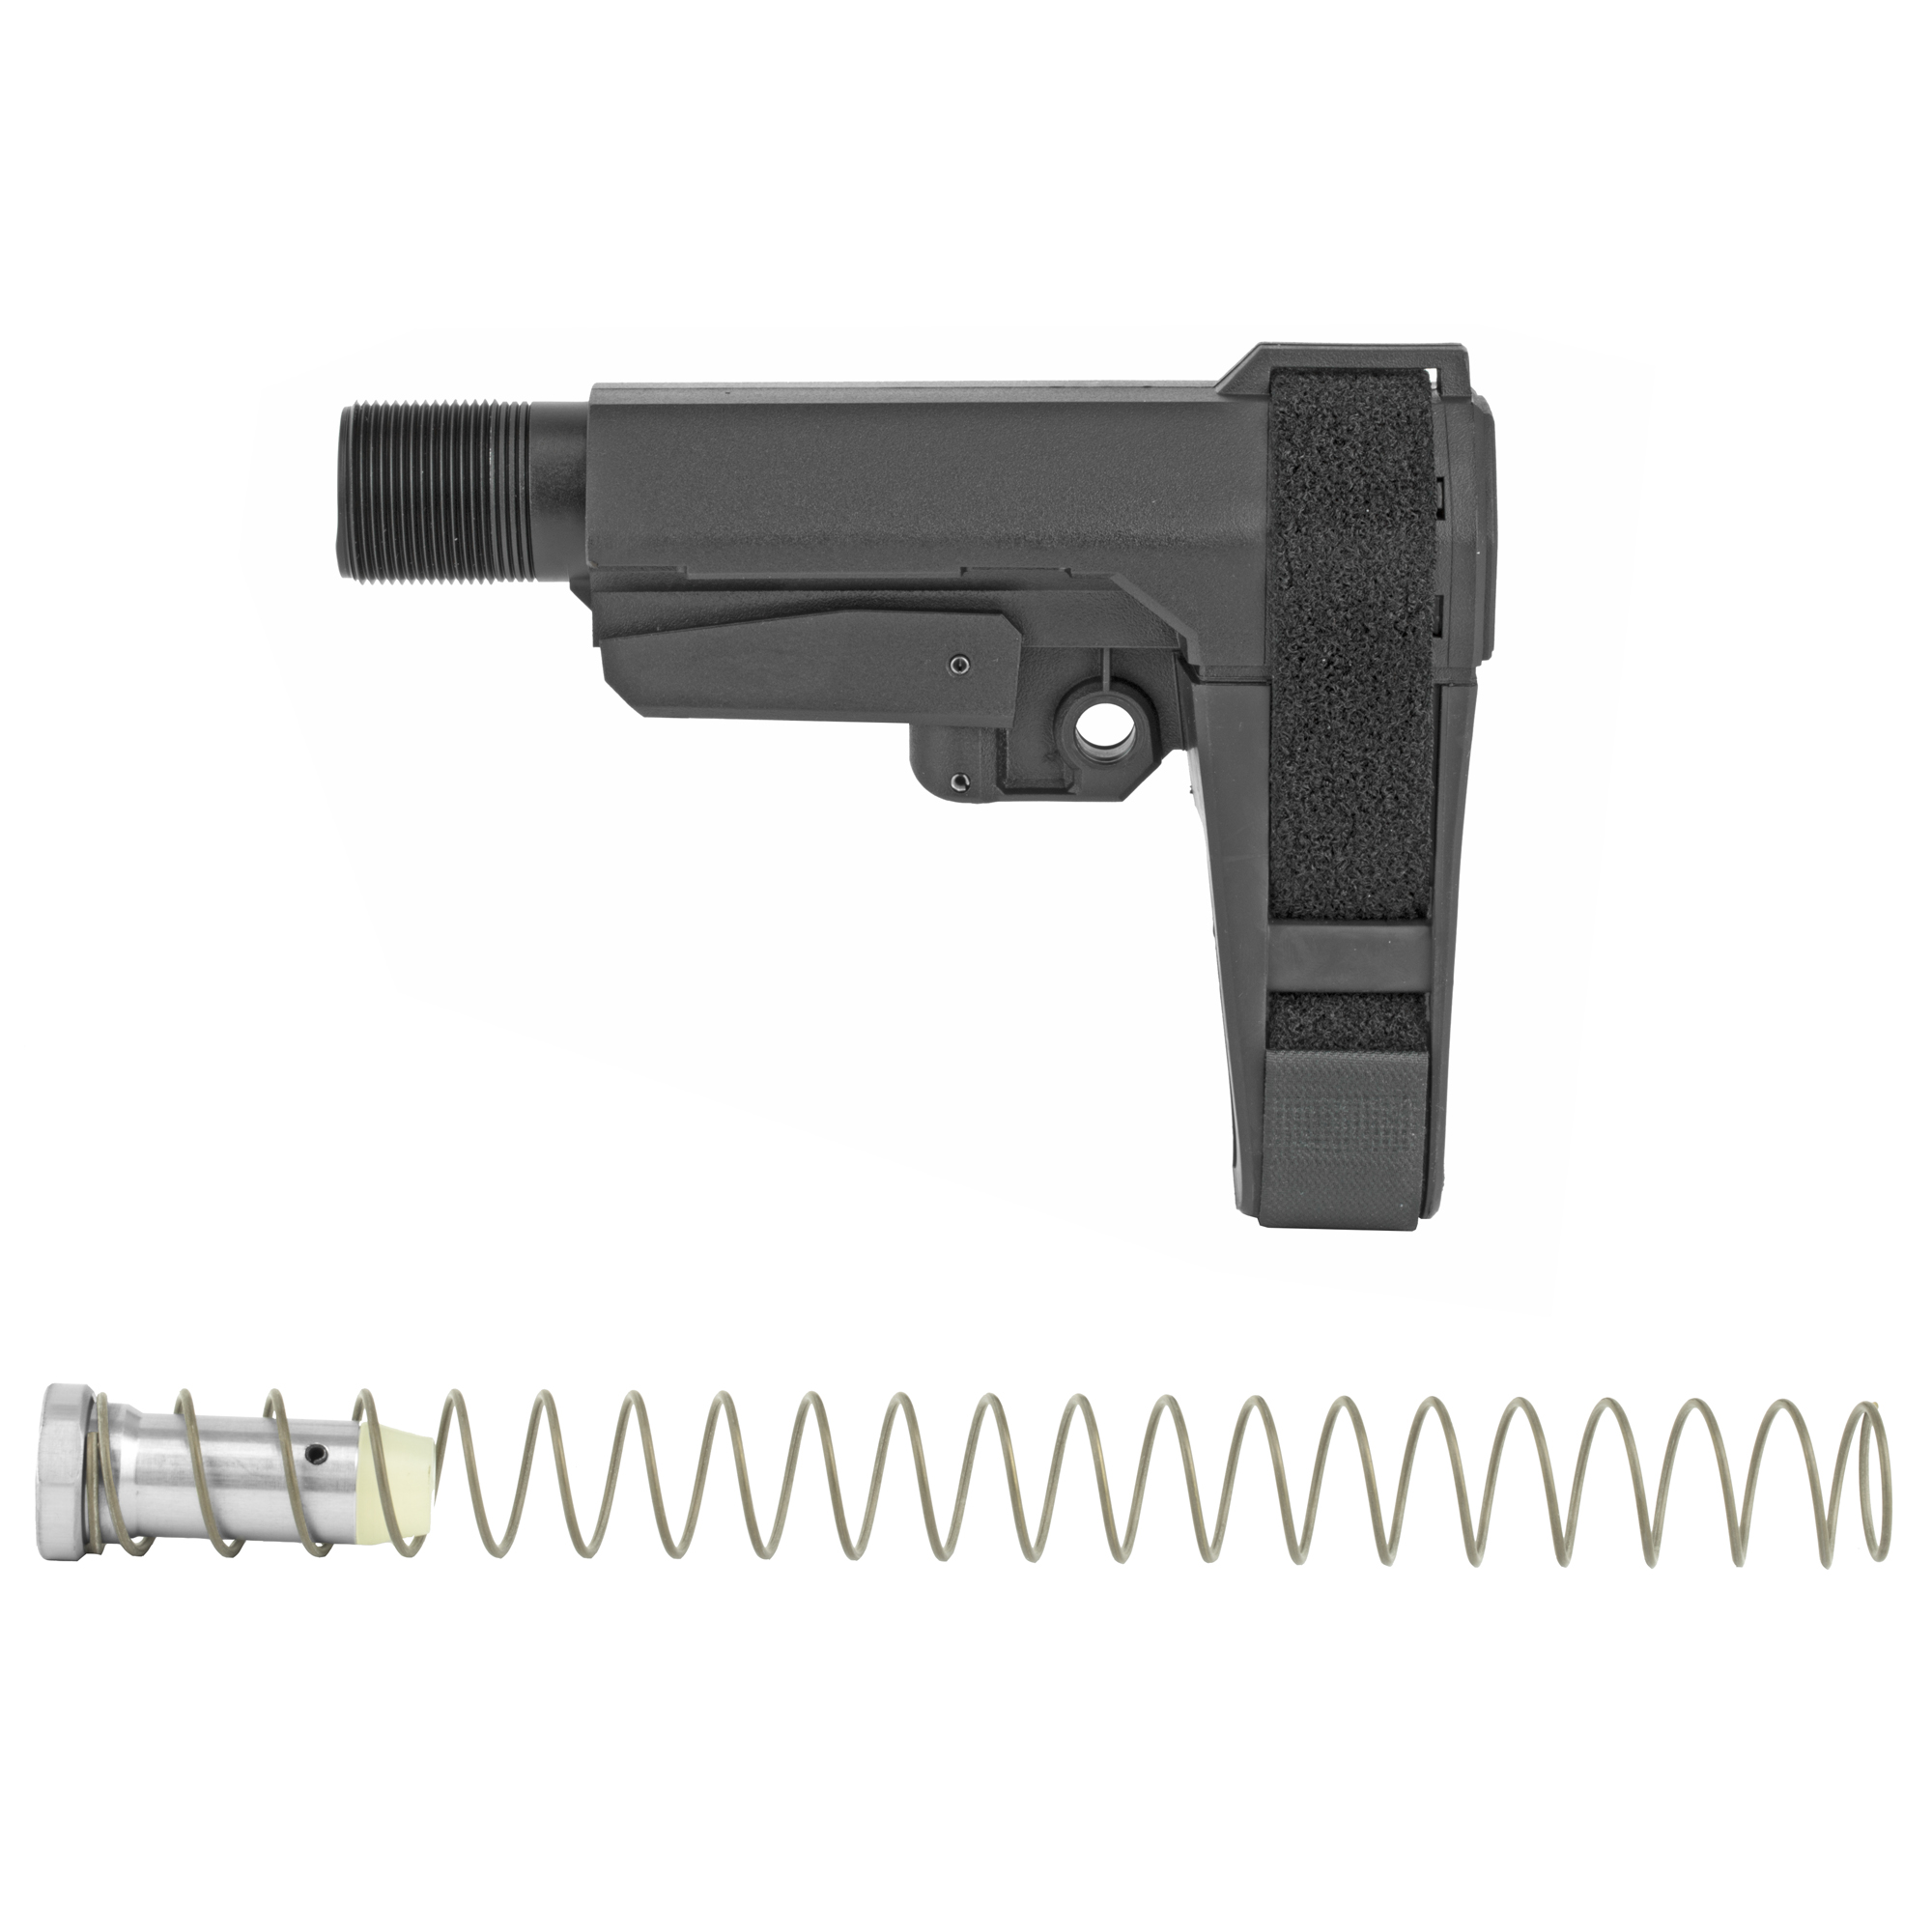 """RipBrace is a revolutionary"""" retractable pistol brace engineered for lightning-fast deployment to your personal setting. With their Fastback Technology"""" you simply pull straight back to extend the brace. No locking tabs to bind. P3 Technology (Personal Position Preset) allows you to adjust the indexing screw and to set your own preset."""